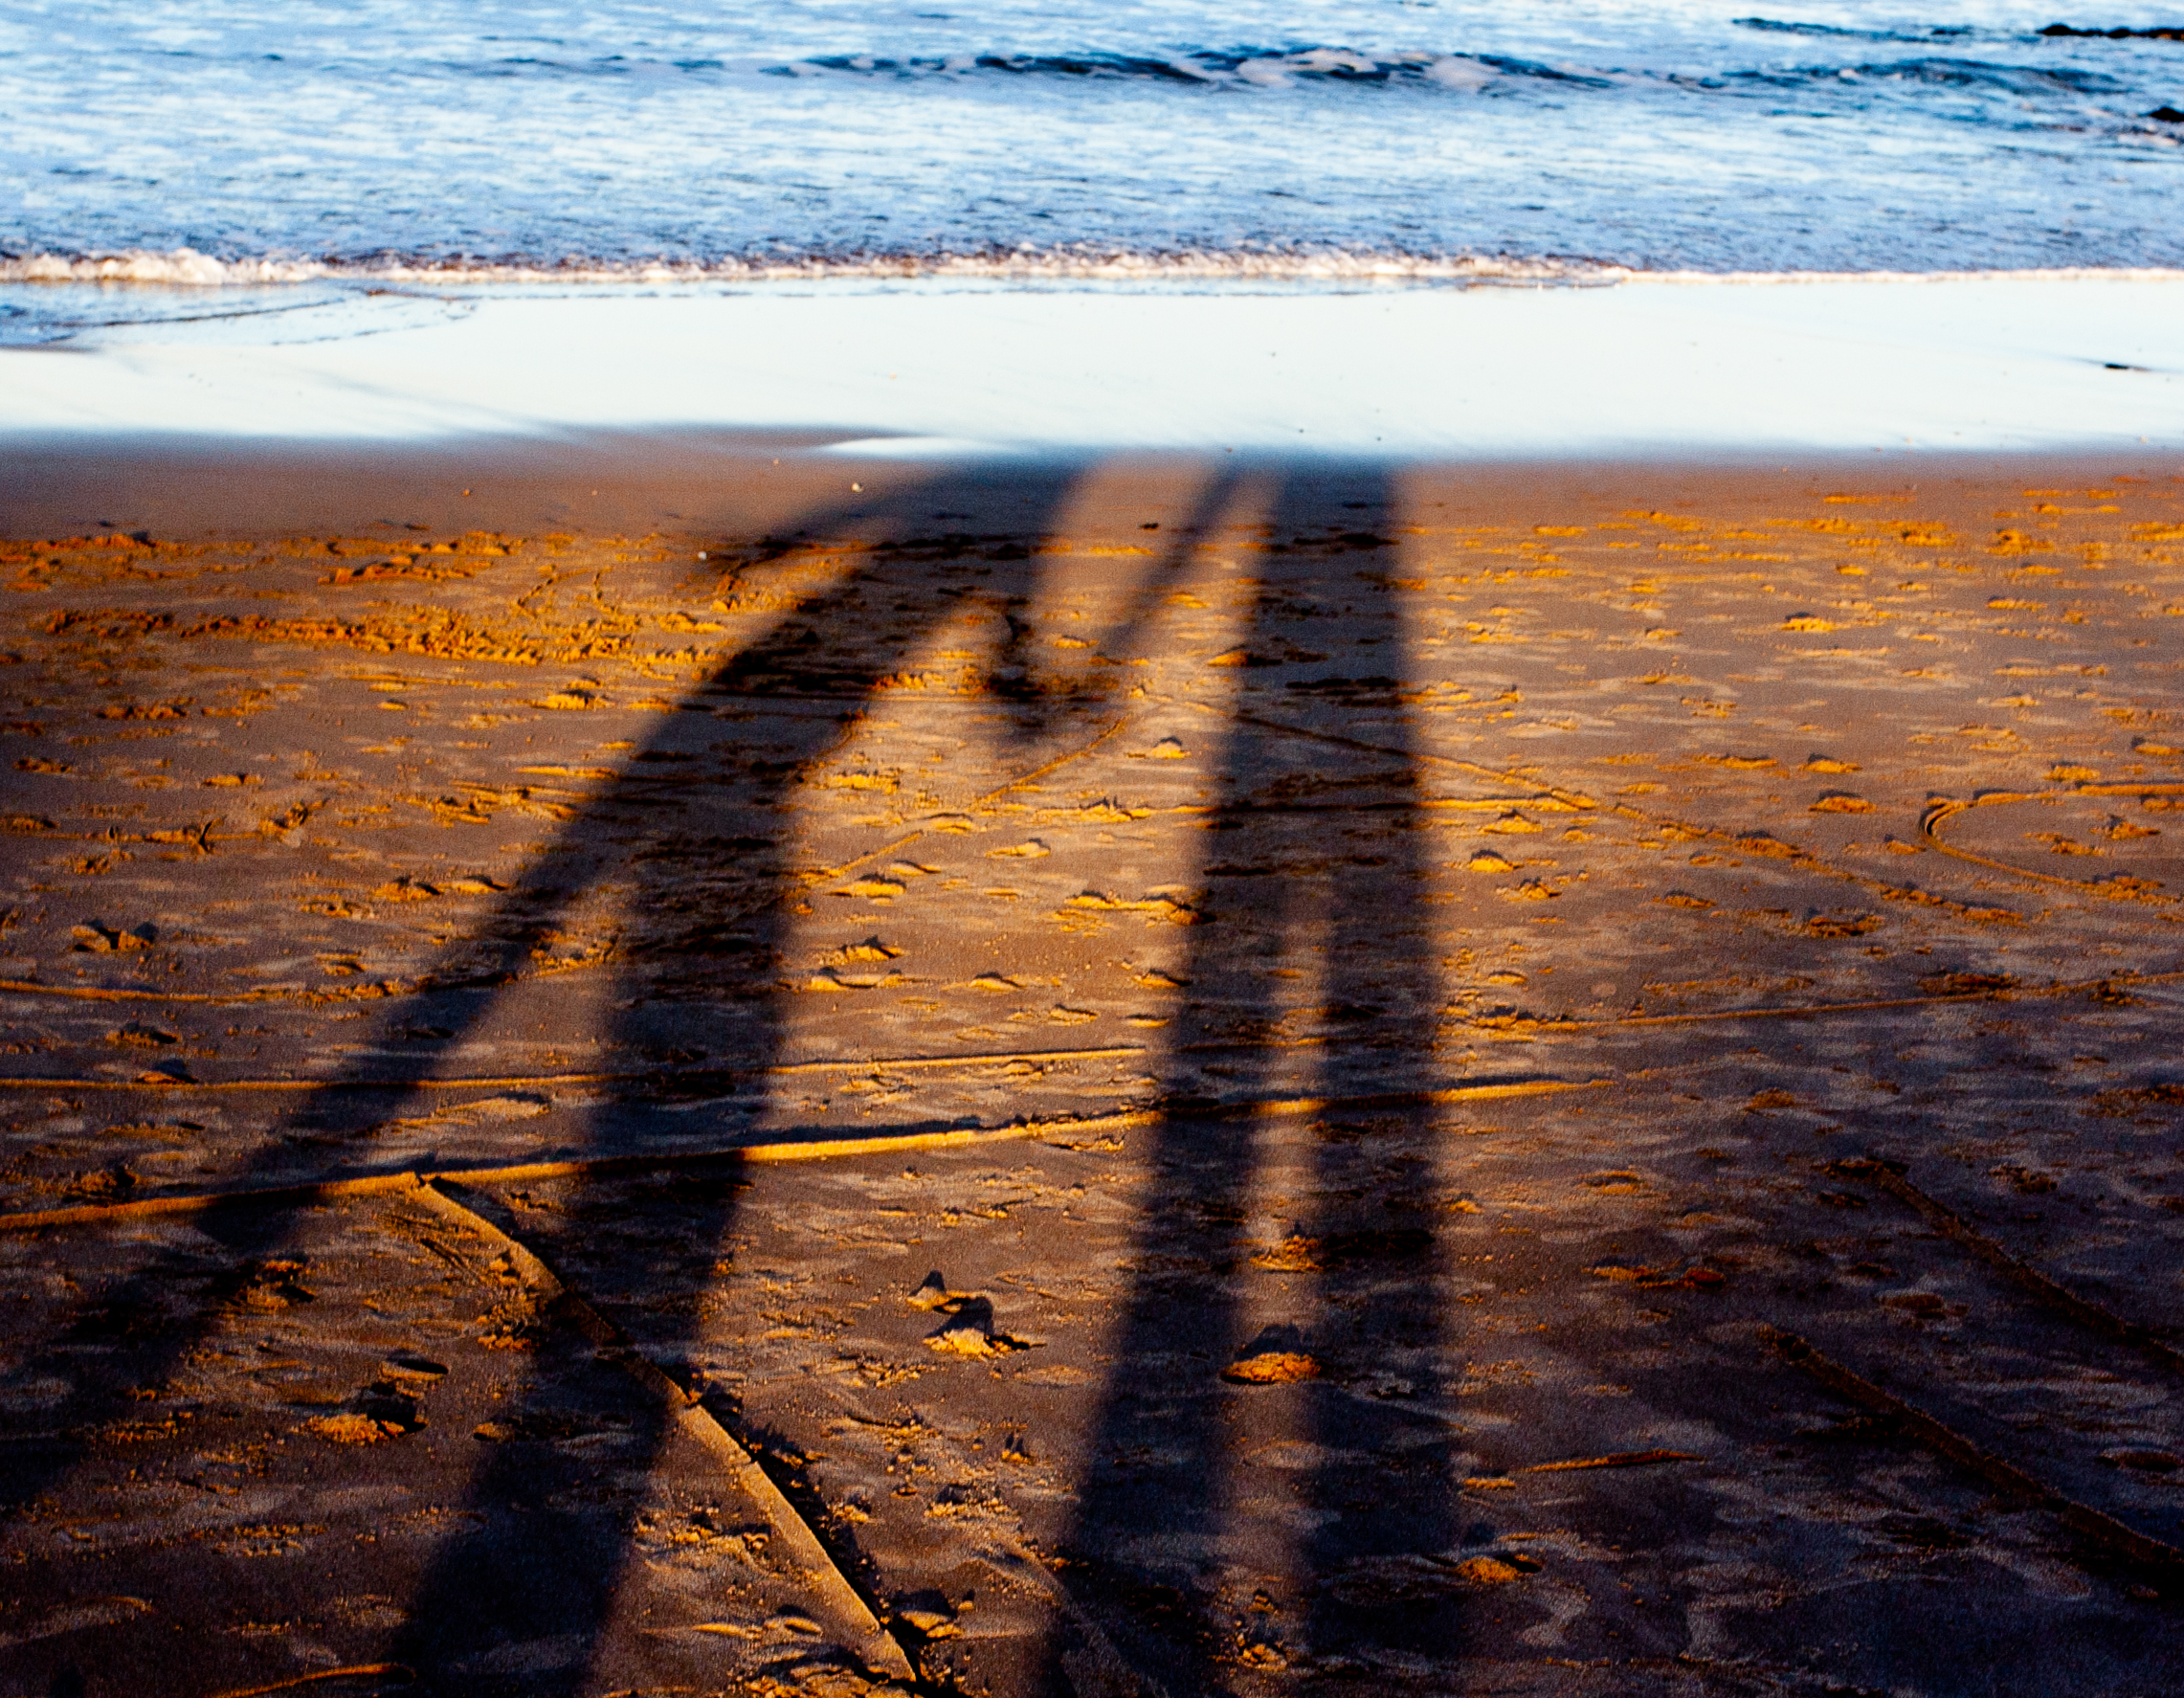 the shadow of me holding hands with Clare on the beach